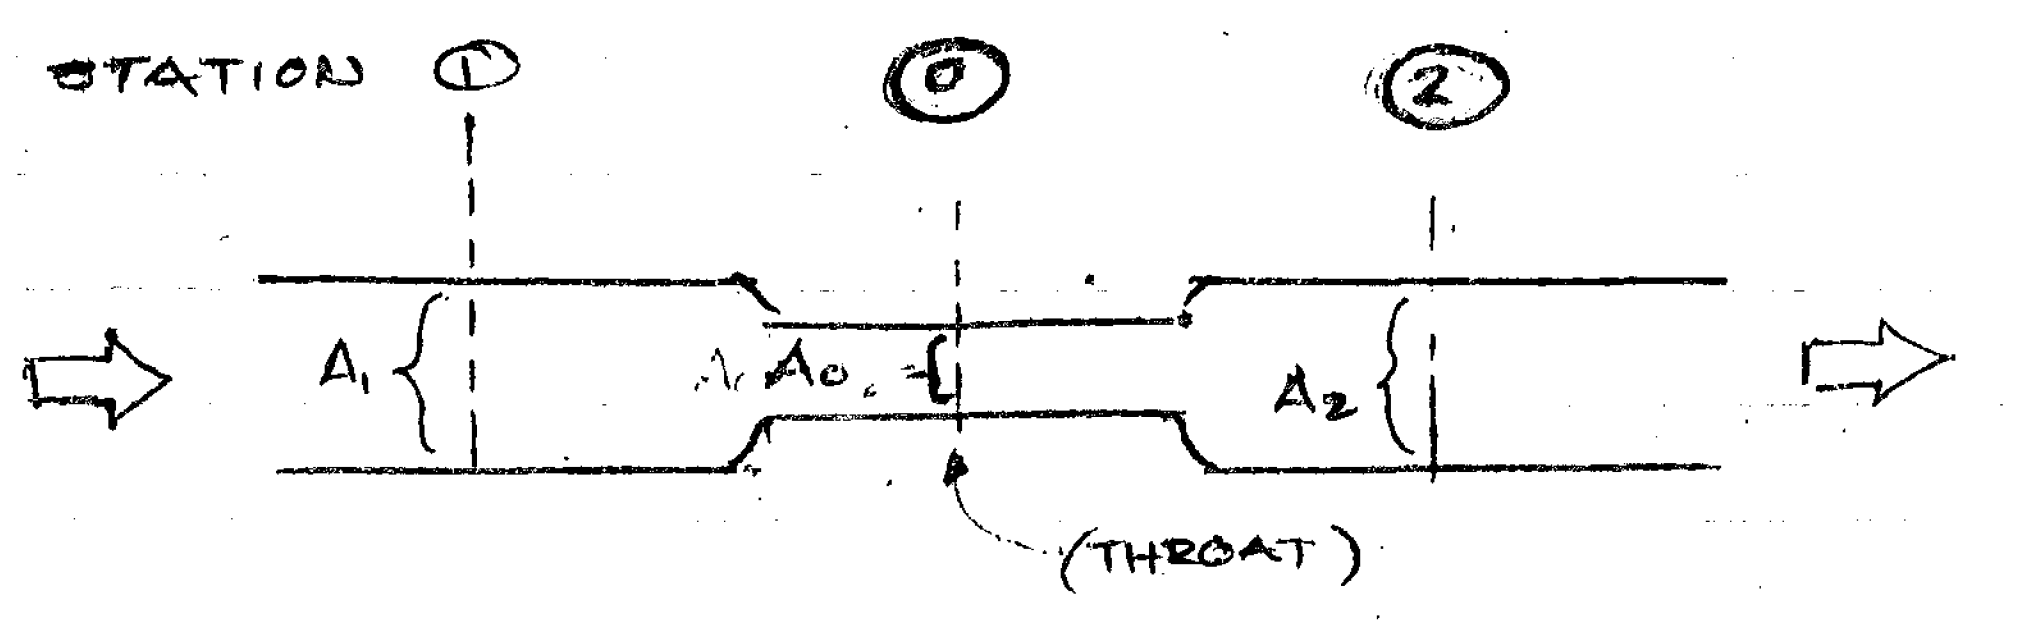 Daniel-Orifice-Diagram